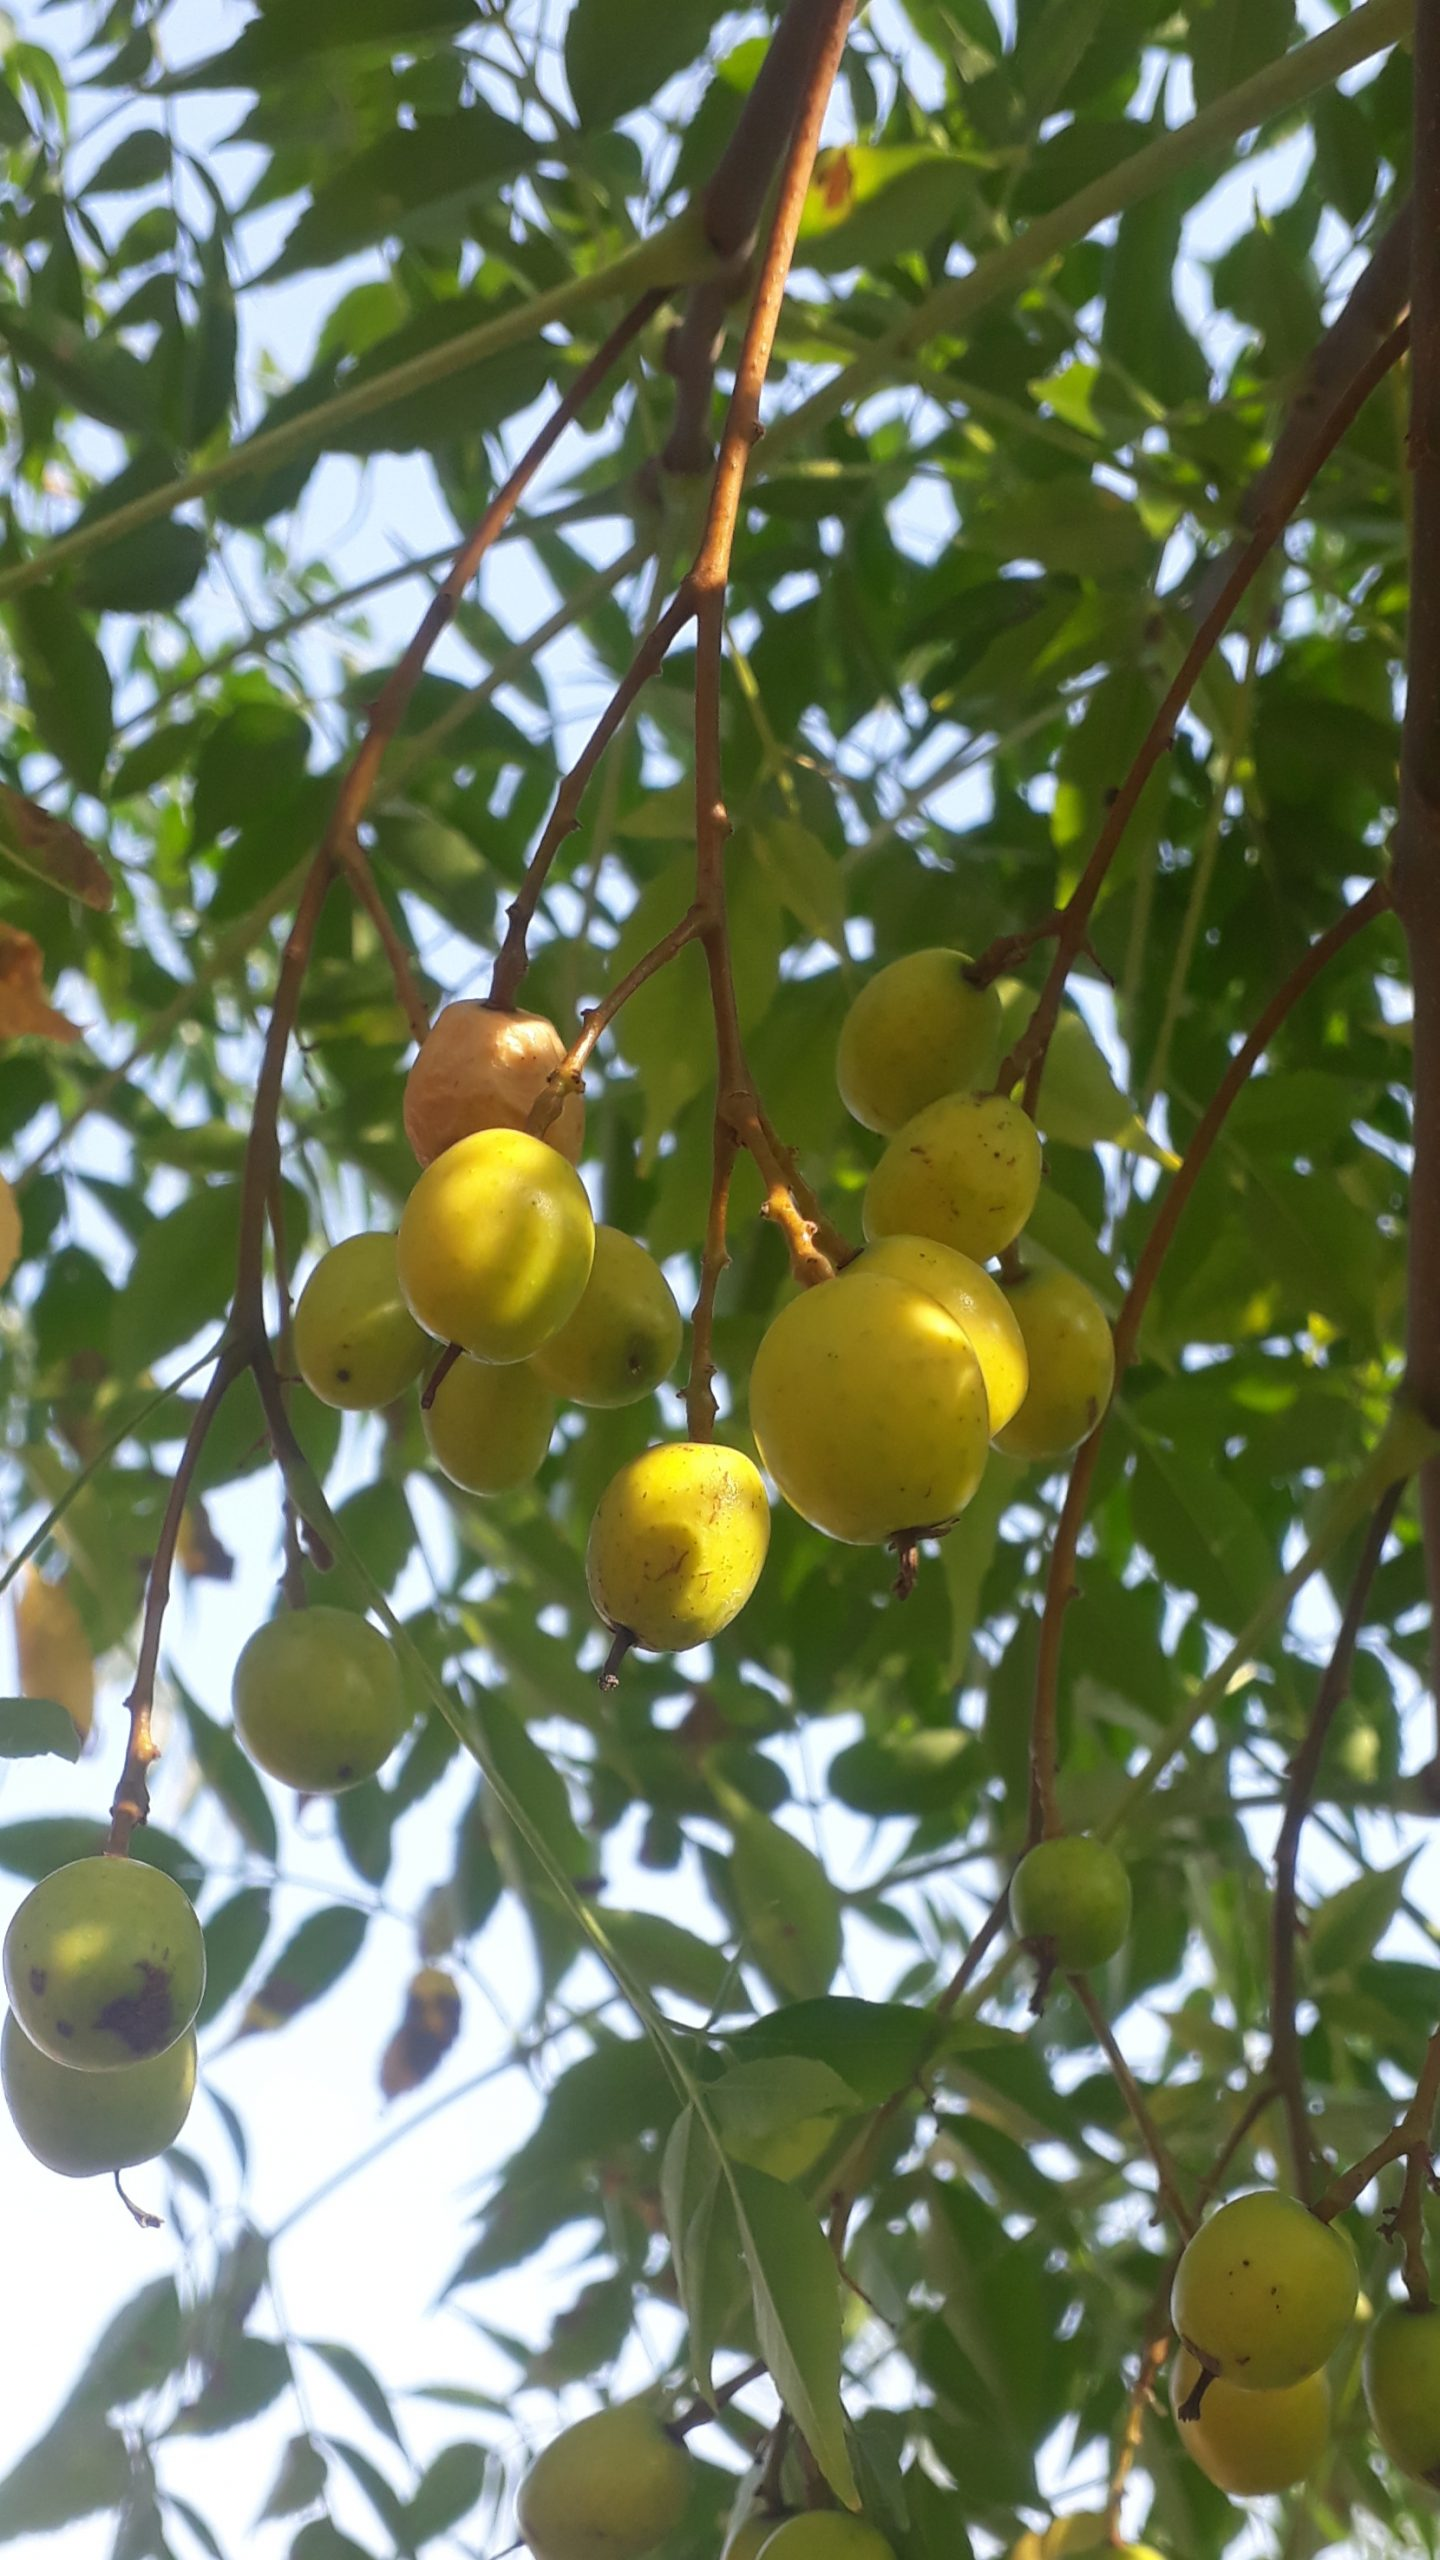 Fruits on tree